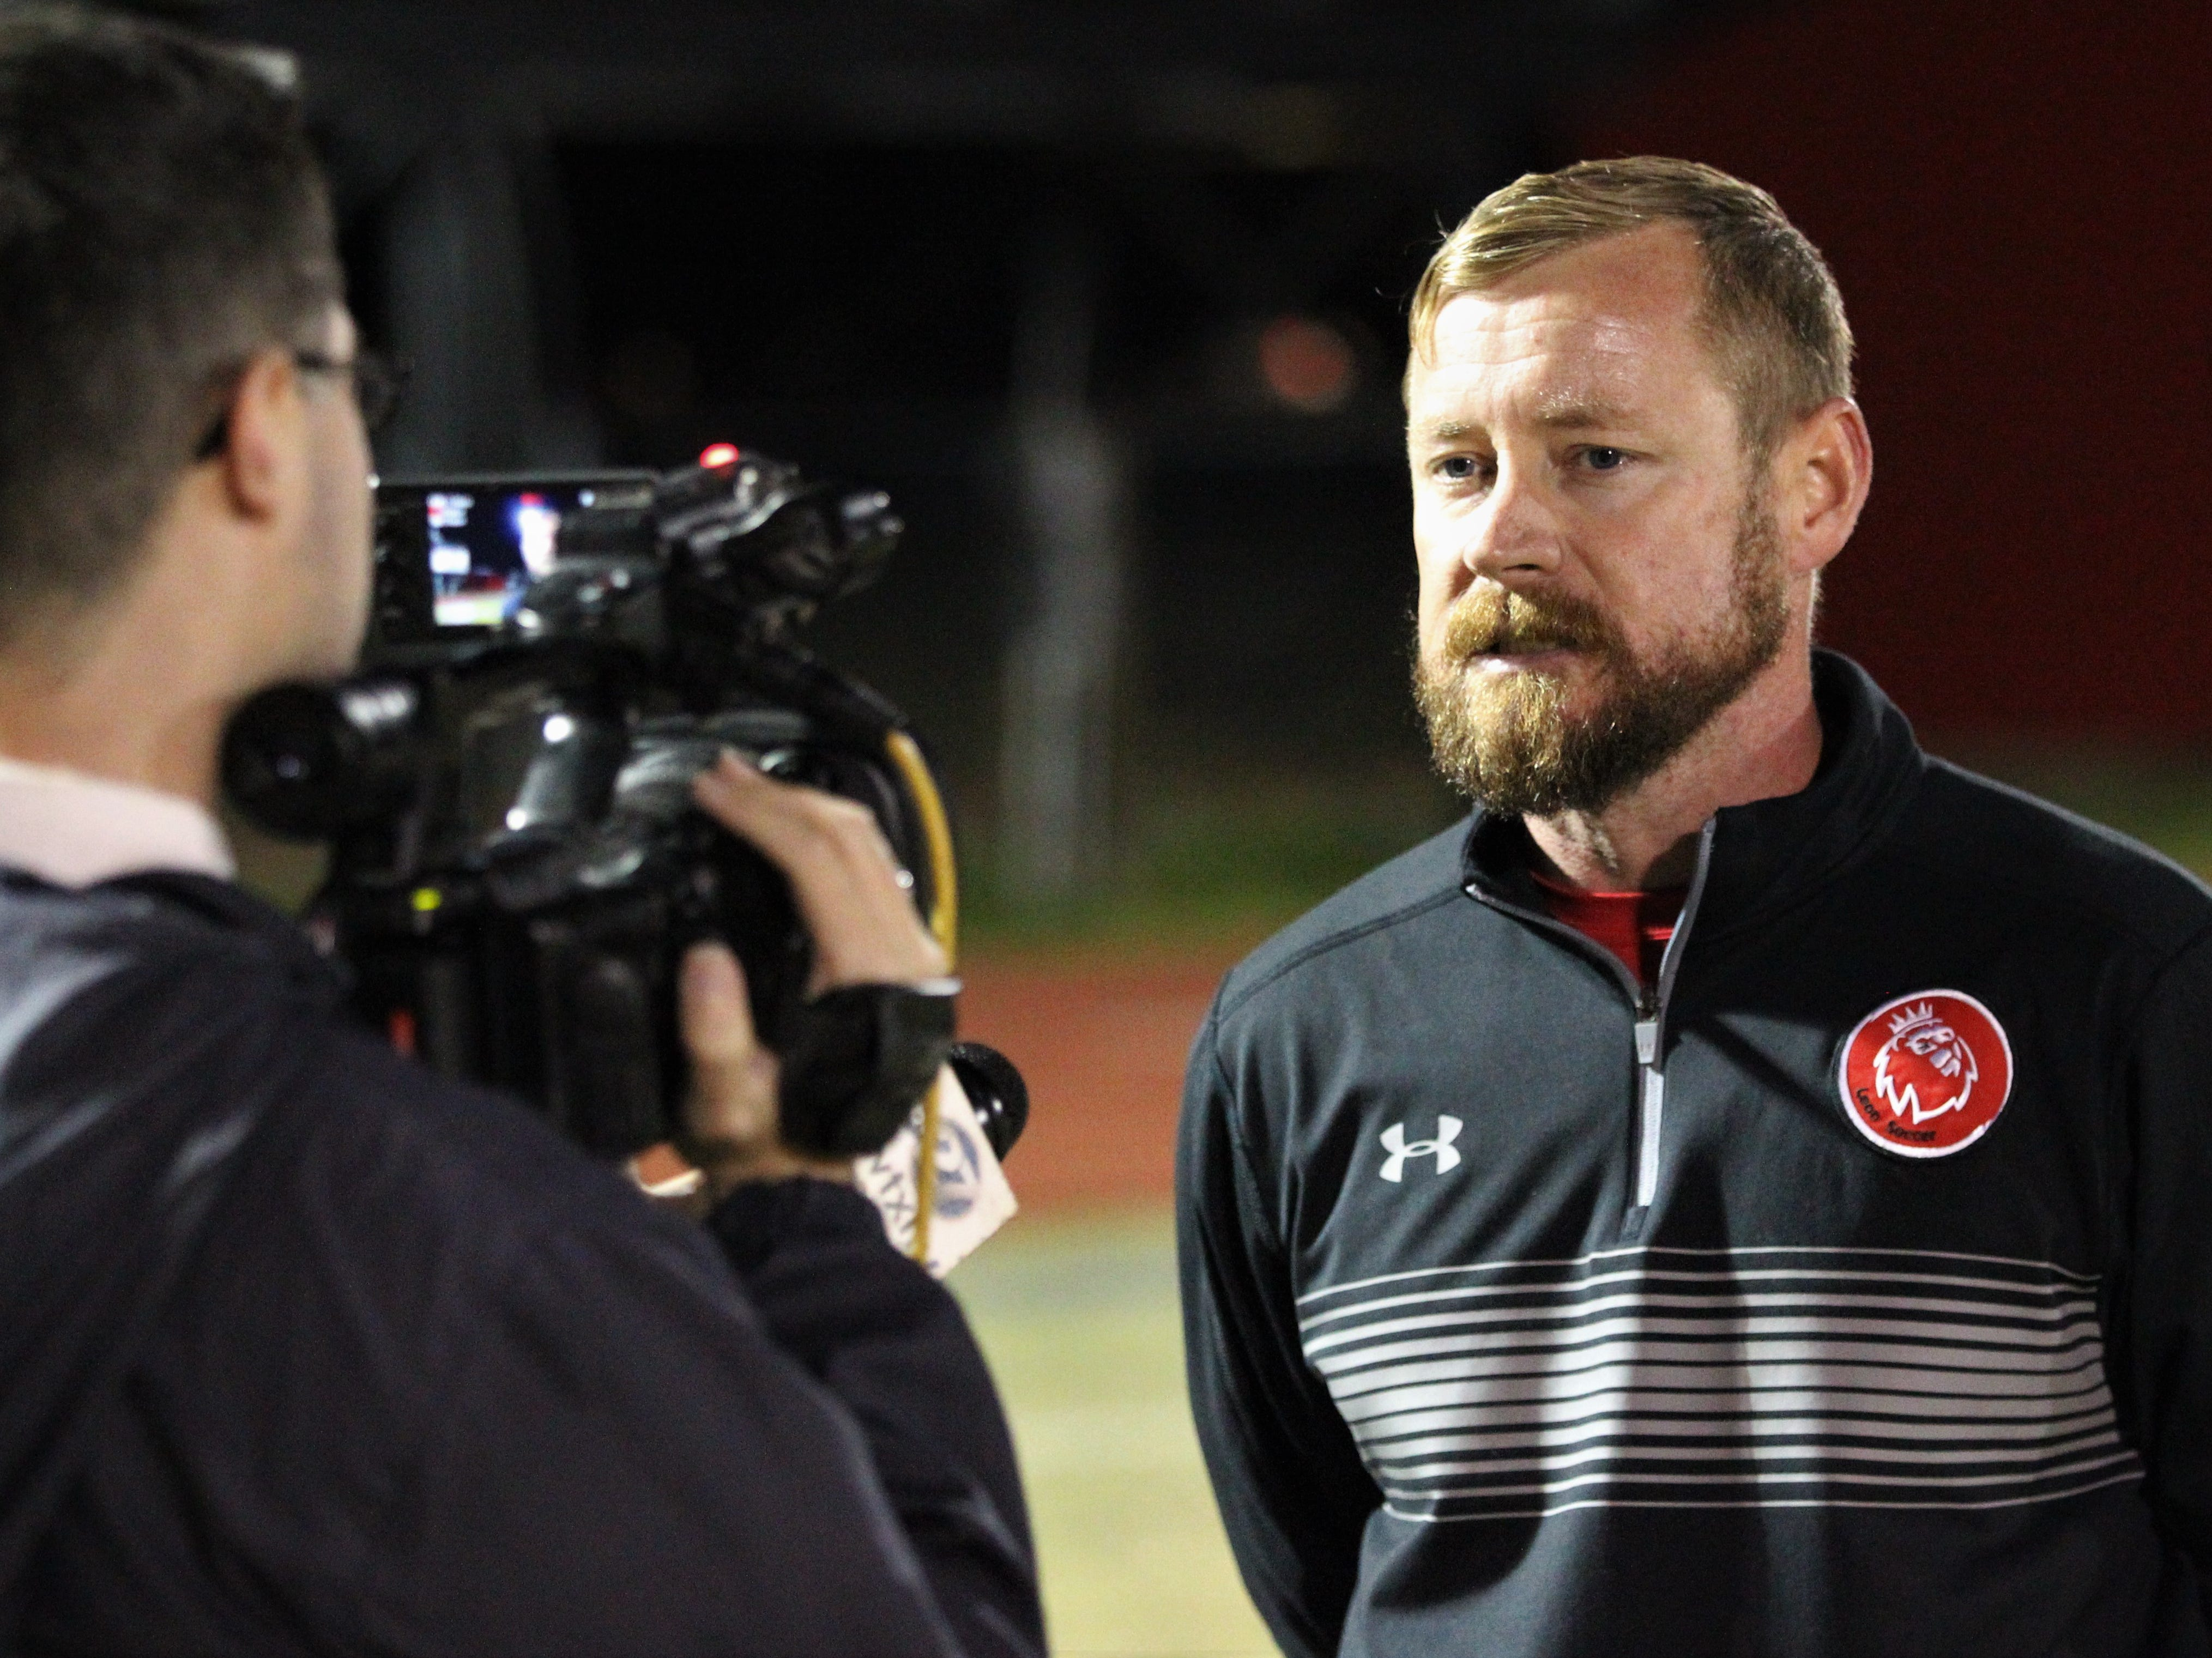 Leon boys soccer coach Jamie McBrearty gets interviewed after the Lions beat Niceville 1-0 in a Region 1-4A semifinal on Feb. 9, 2019.